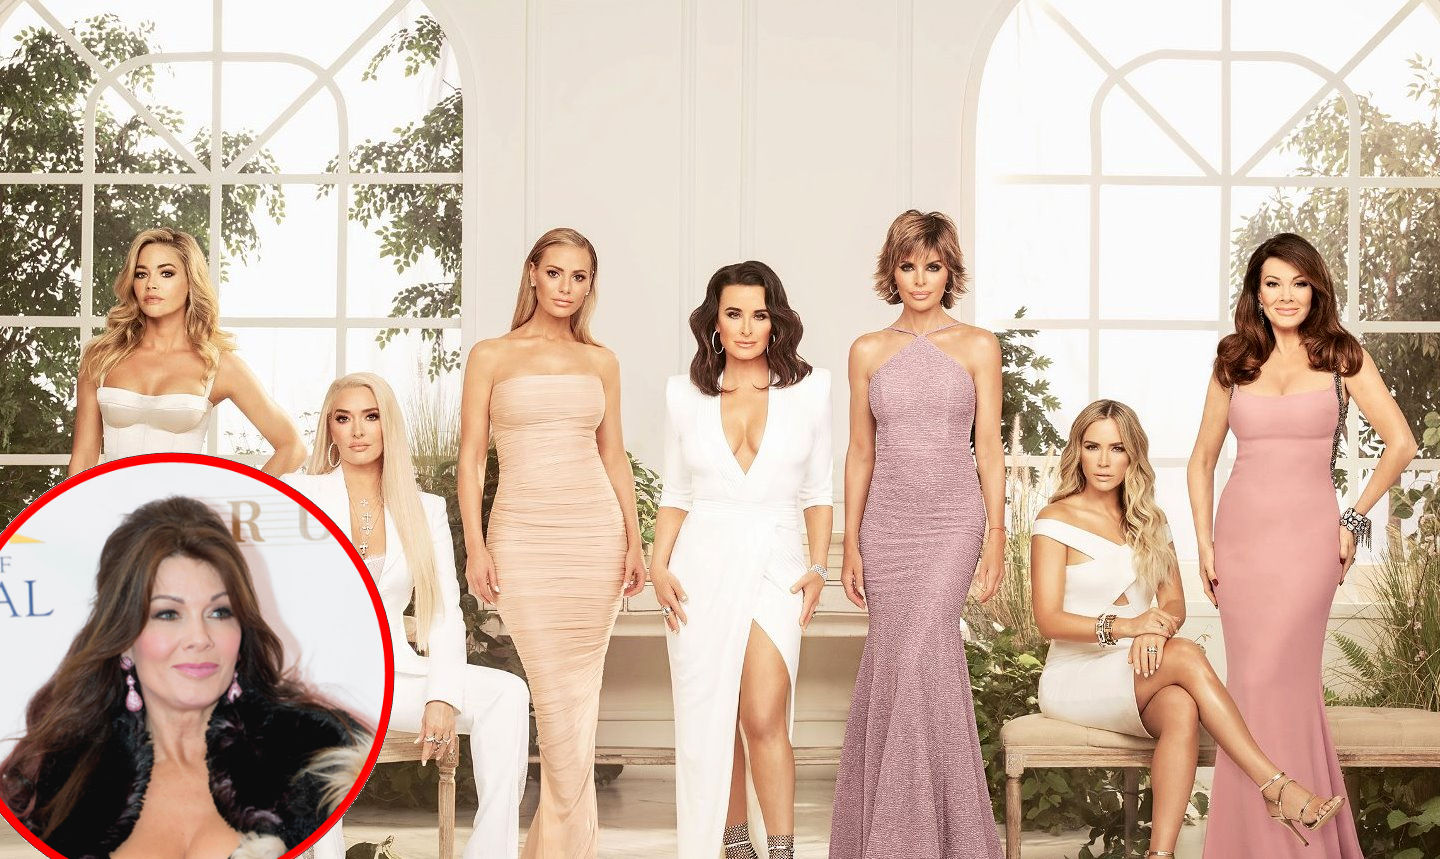 Lisa Vanderpump's Feud with RHOBH Cast Worse Since Filming Ended